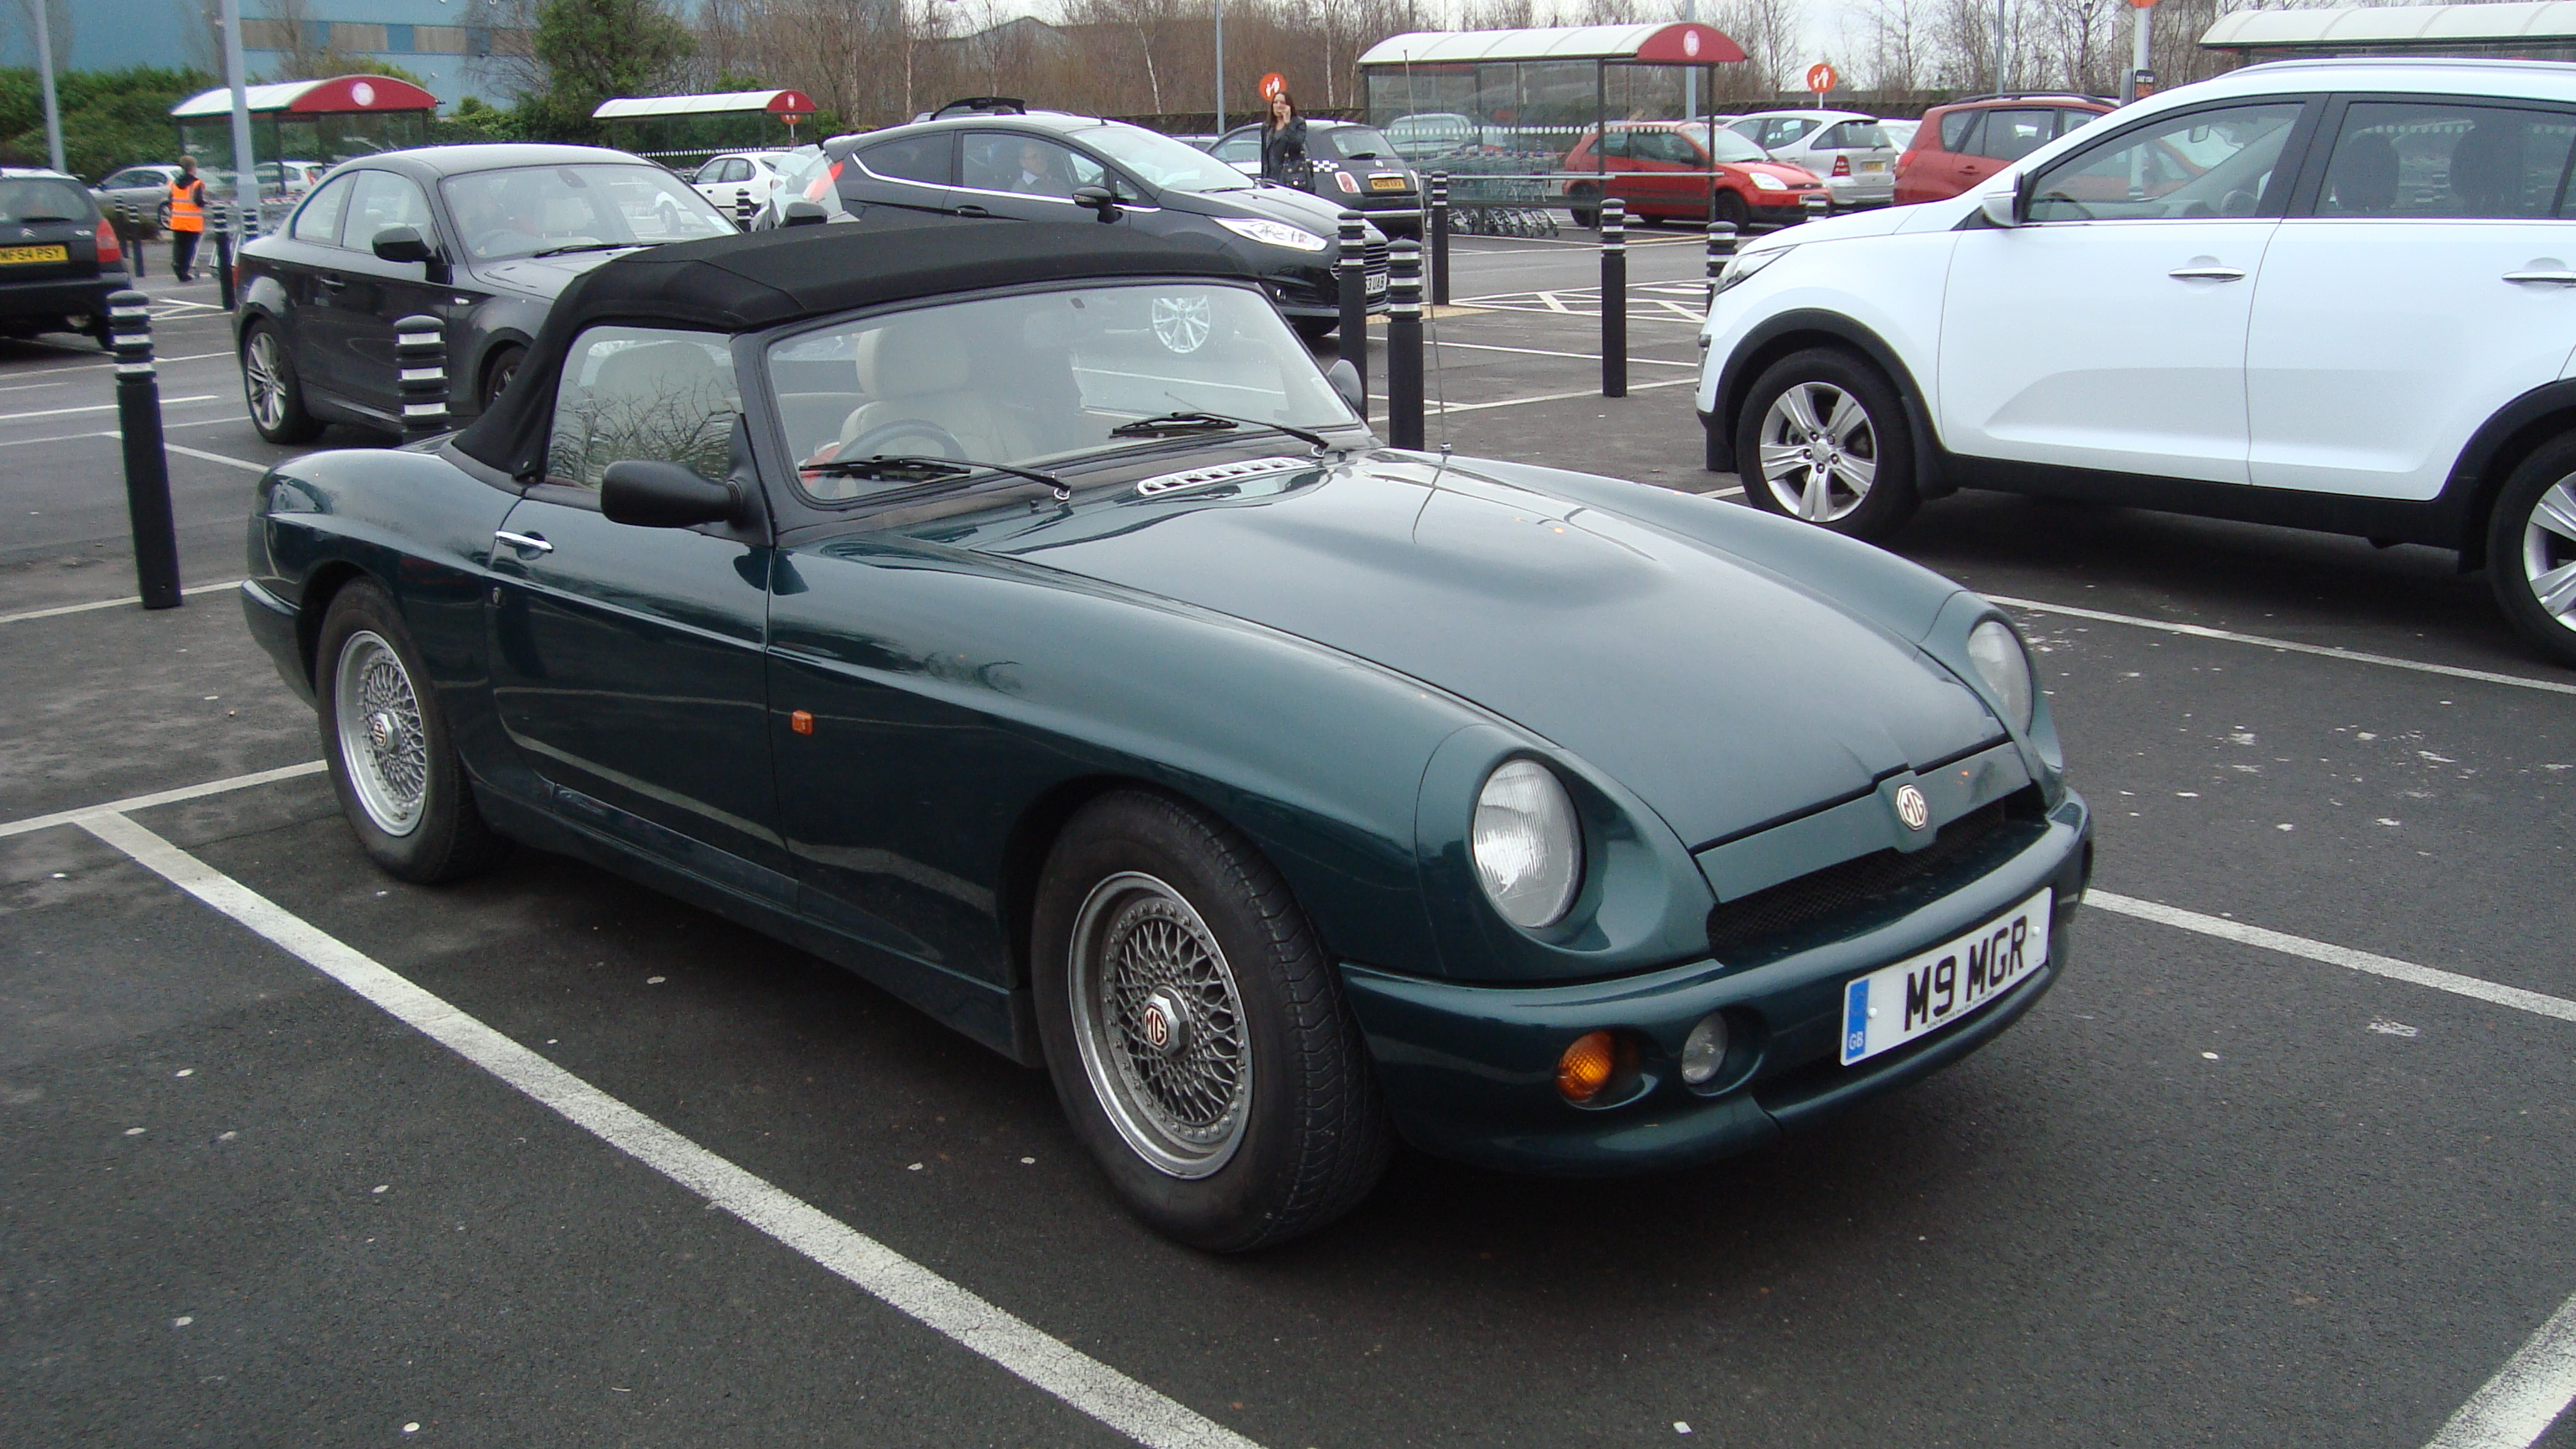 File:1994 MG RV8 (16347496056) jpg - Wikimedia Commons